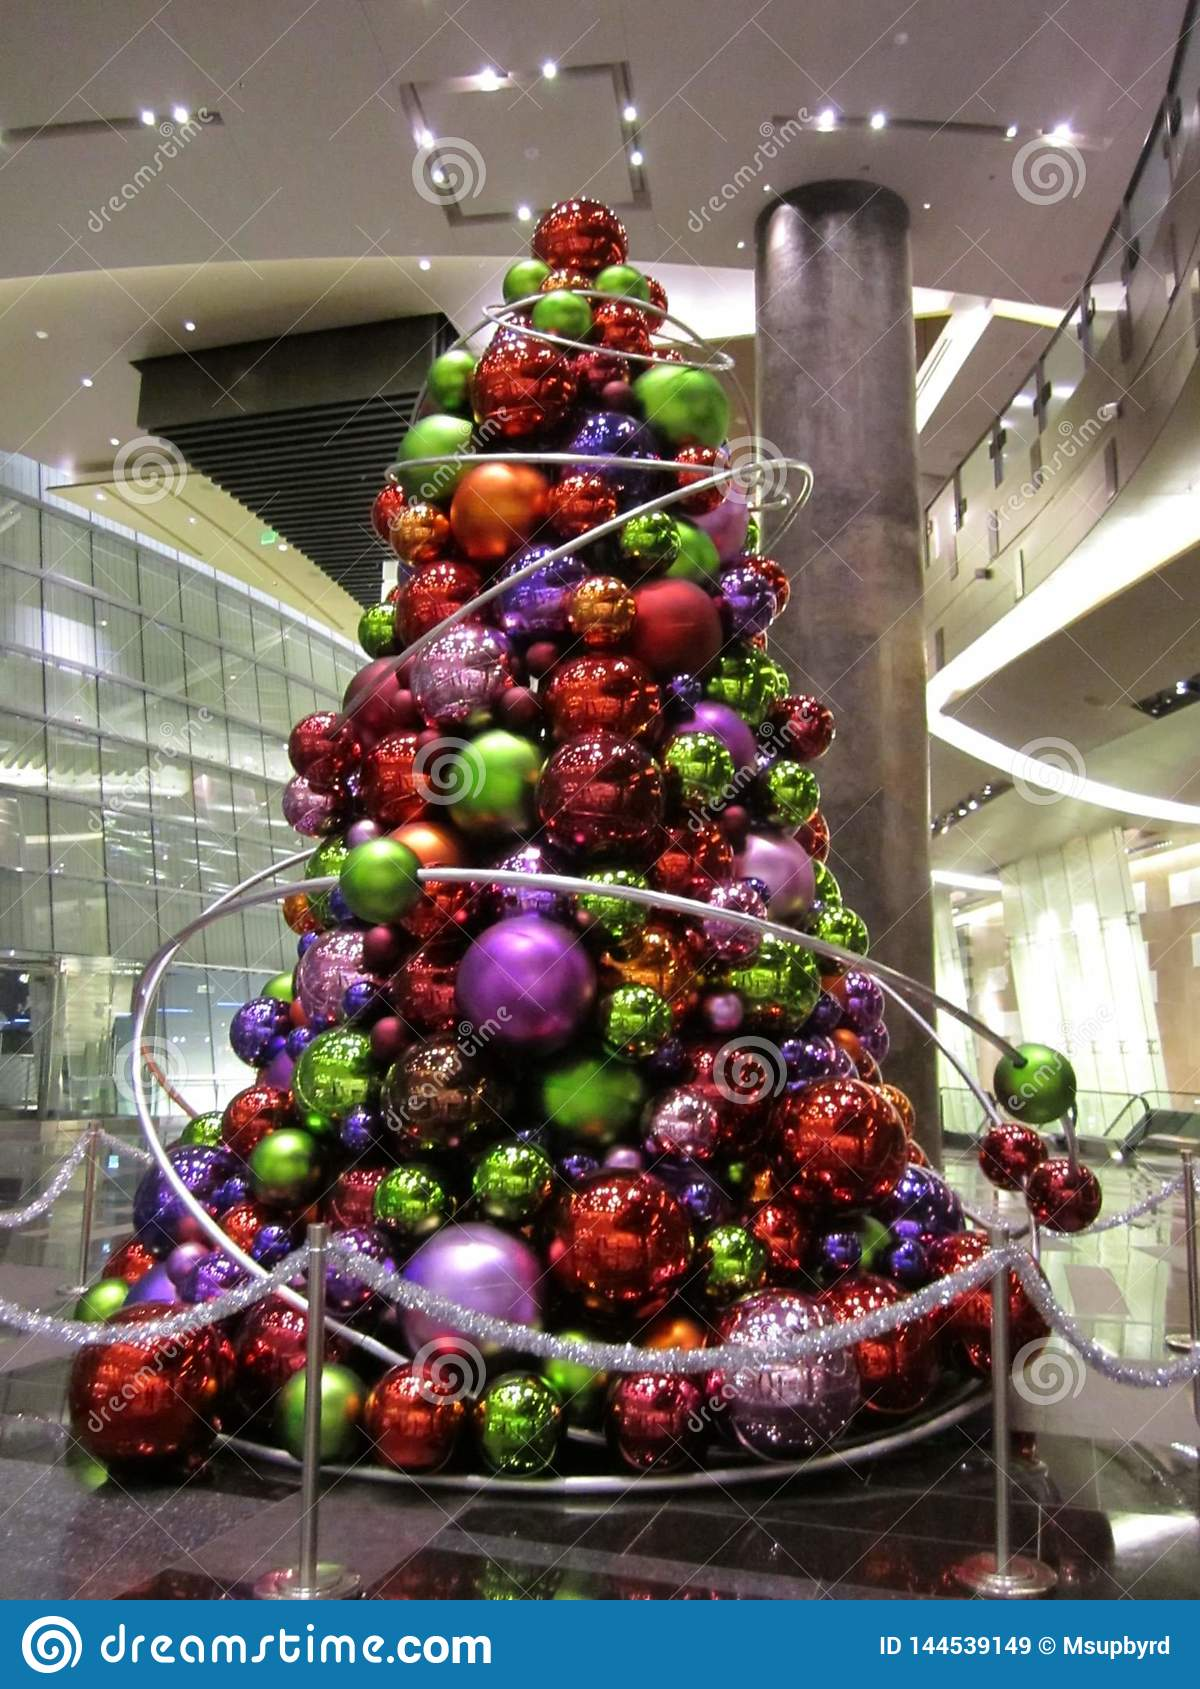 Modern Festive Indoor Christmas Tree Display